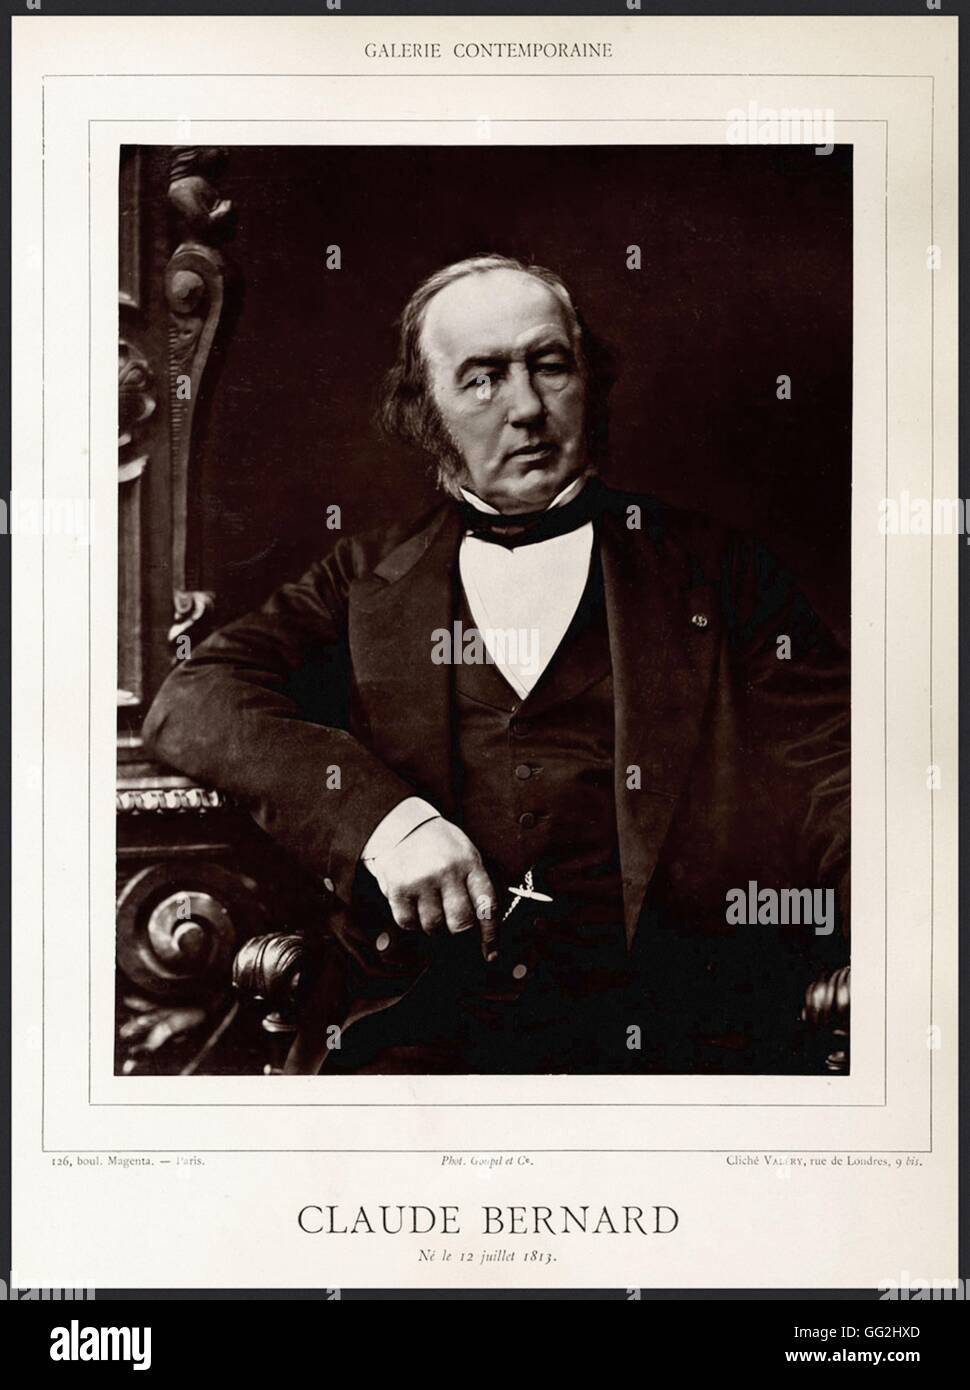 Claude Bernard (1813-1878), french doctor Photo by Valéry - Stock Image